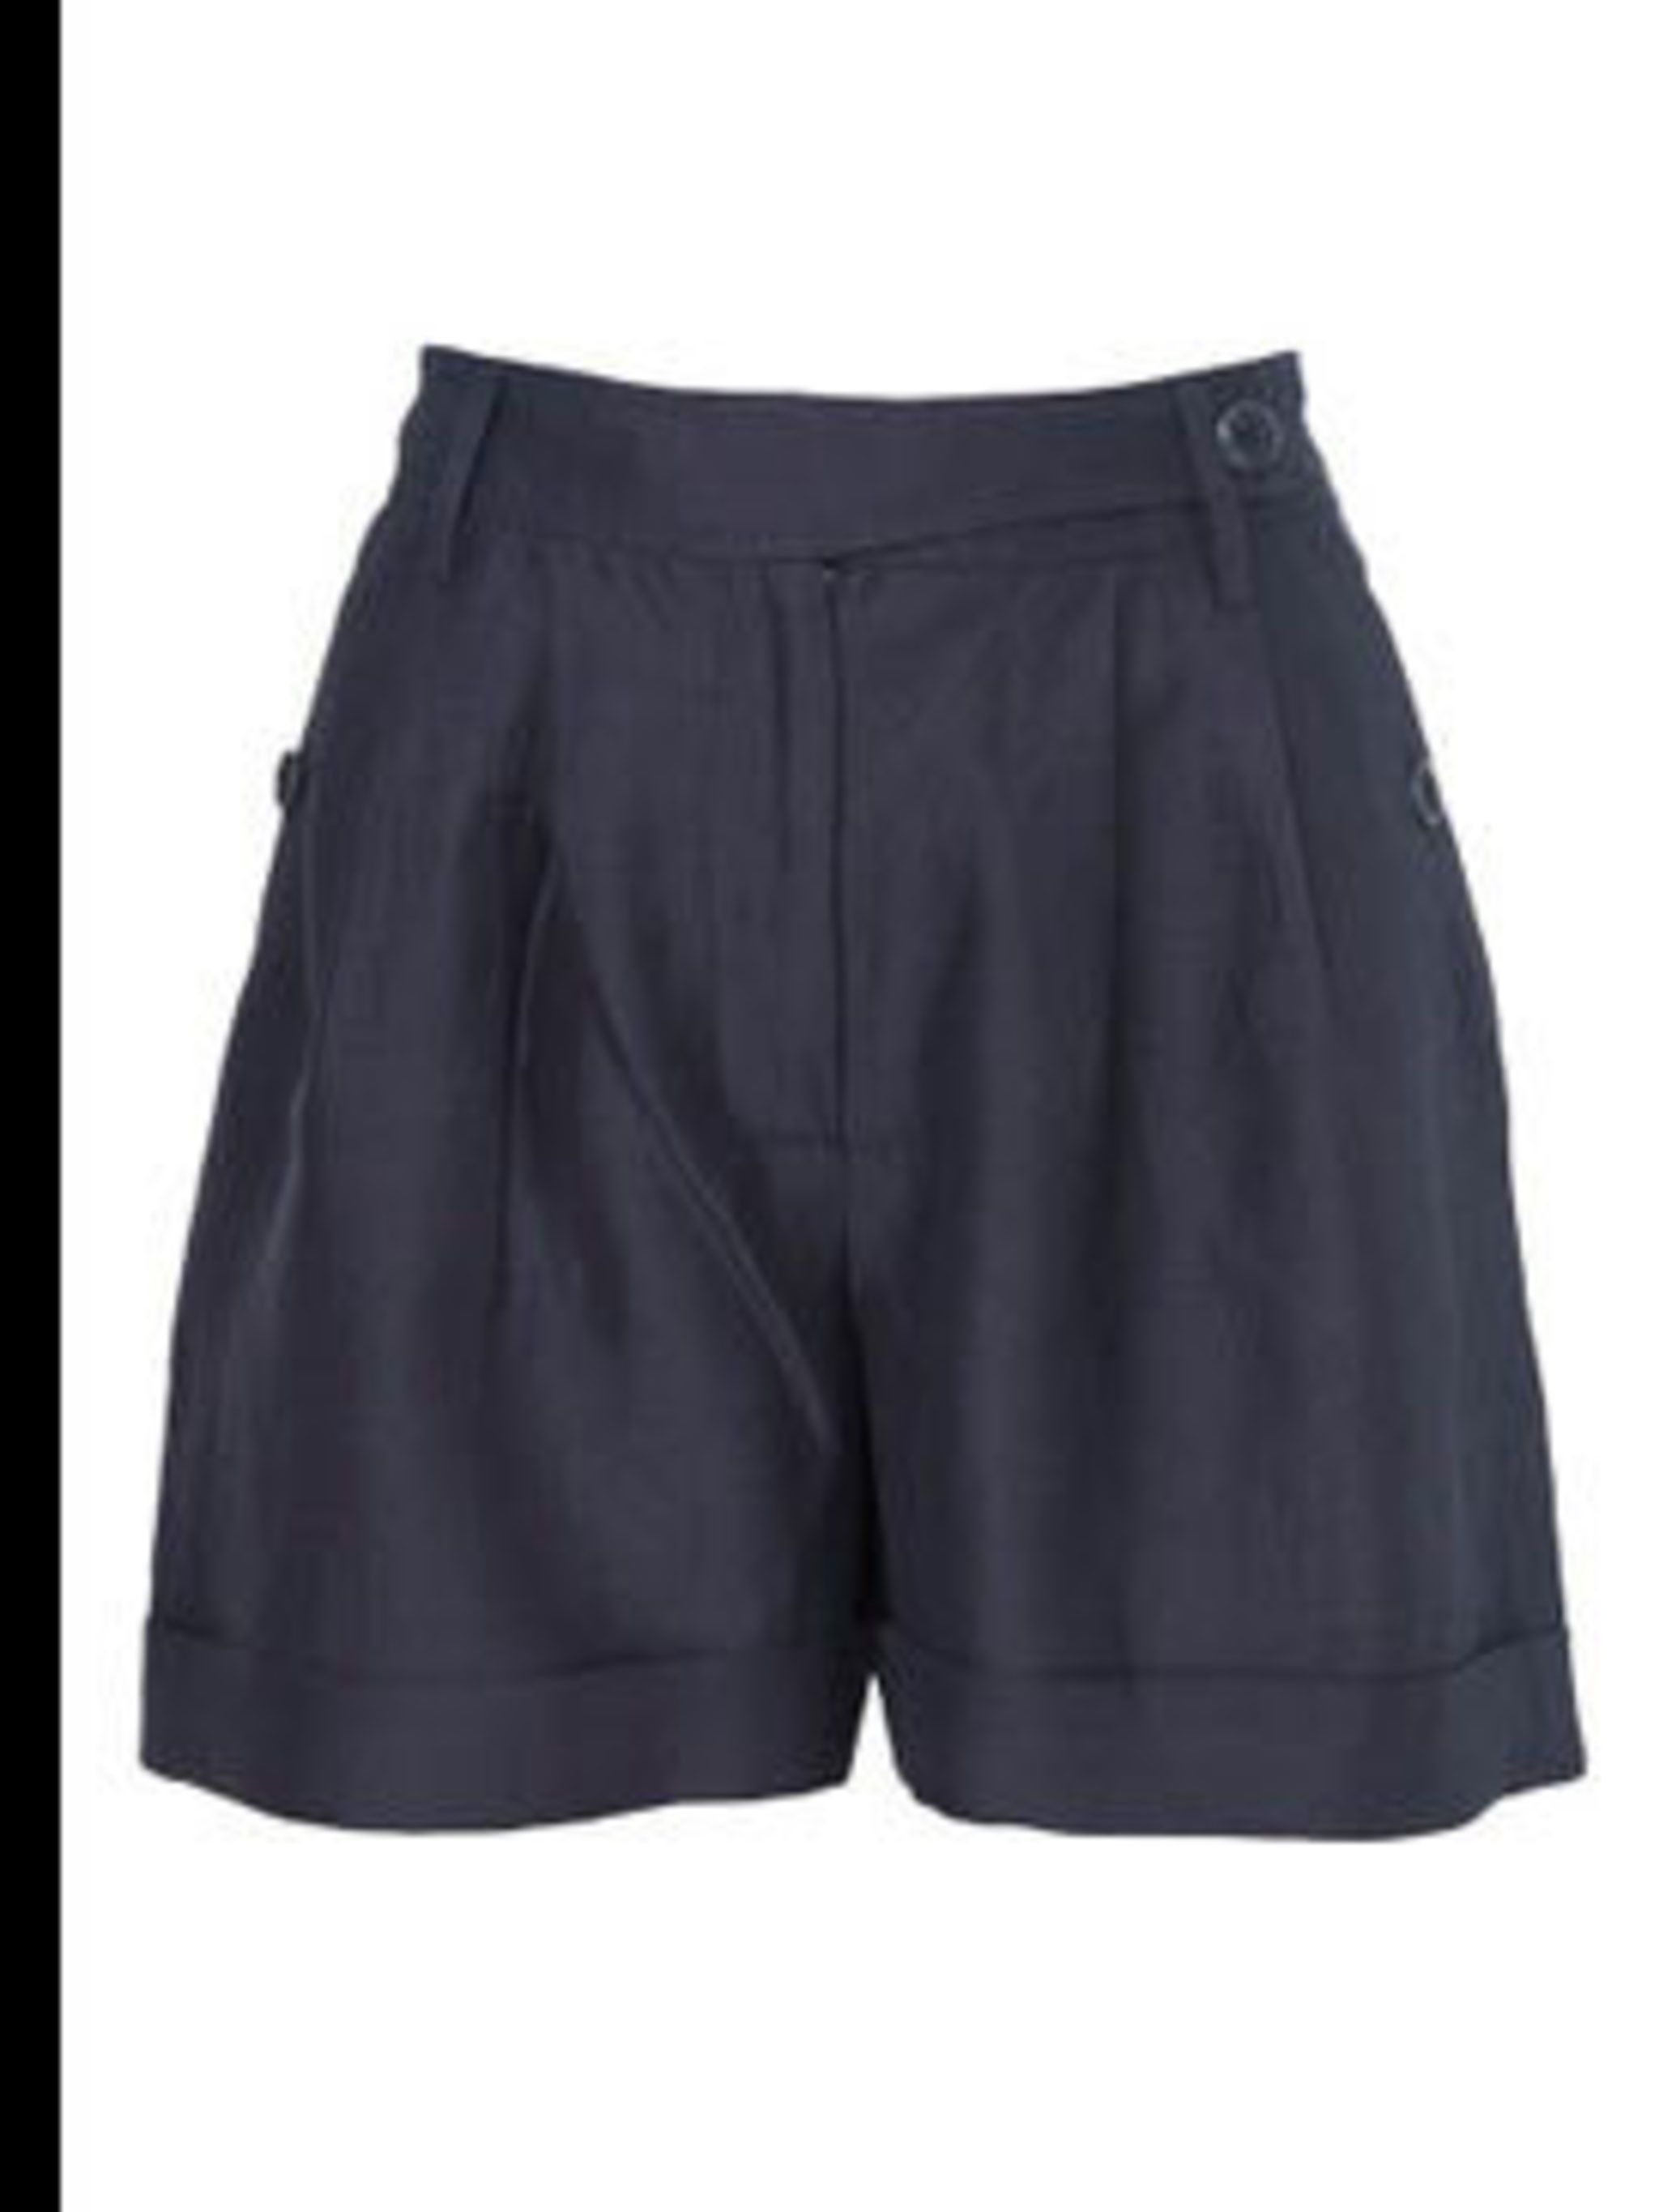 "<p>Shorts, £70 by <a href=""http://www.whistles.co.uk/fcp/product/whistles/newin/Navy-Cross-Over-Front-Short/903000052636"">Whistles</a></p>"